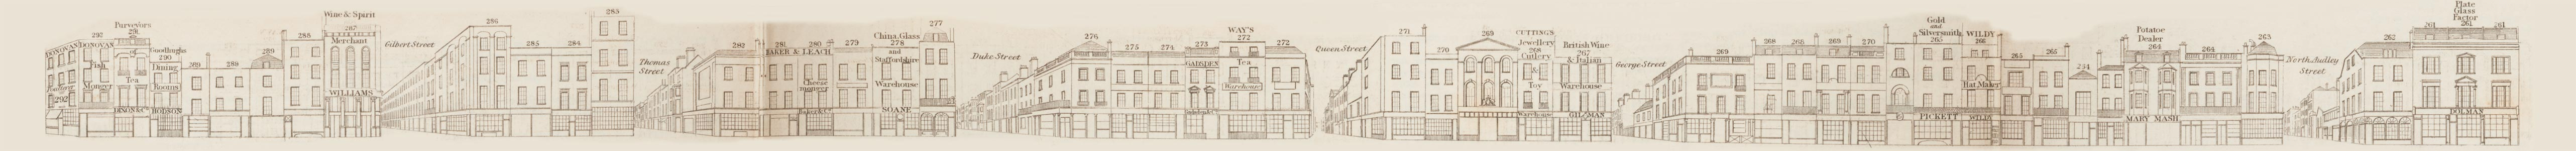 map - Tallis's London street views : No. 48. Oxford Street, division 5 (south)